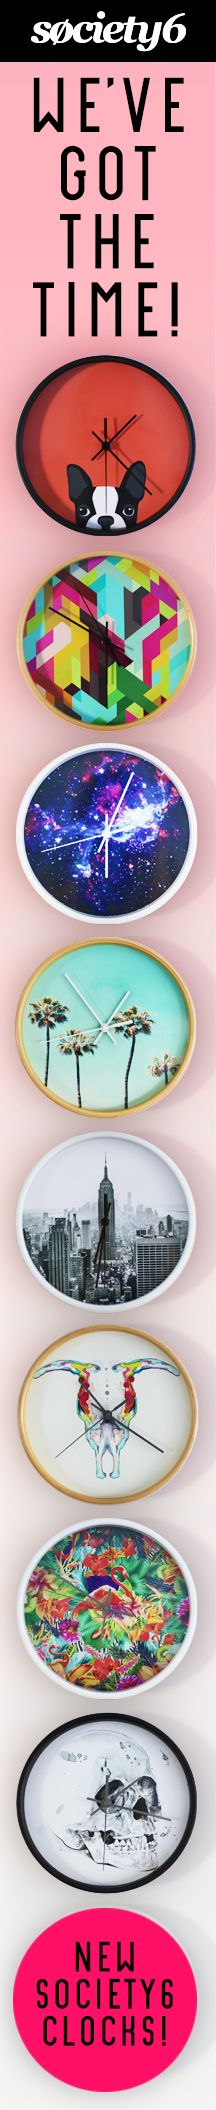 "Make Time For Art with Society6 Wall Clocks! Browse hundreds of thousands of designs by artists from around the world on three styles of 12"" wall clocks!"